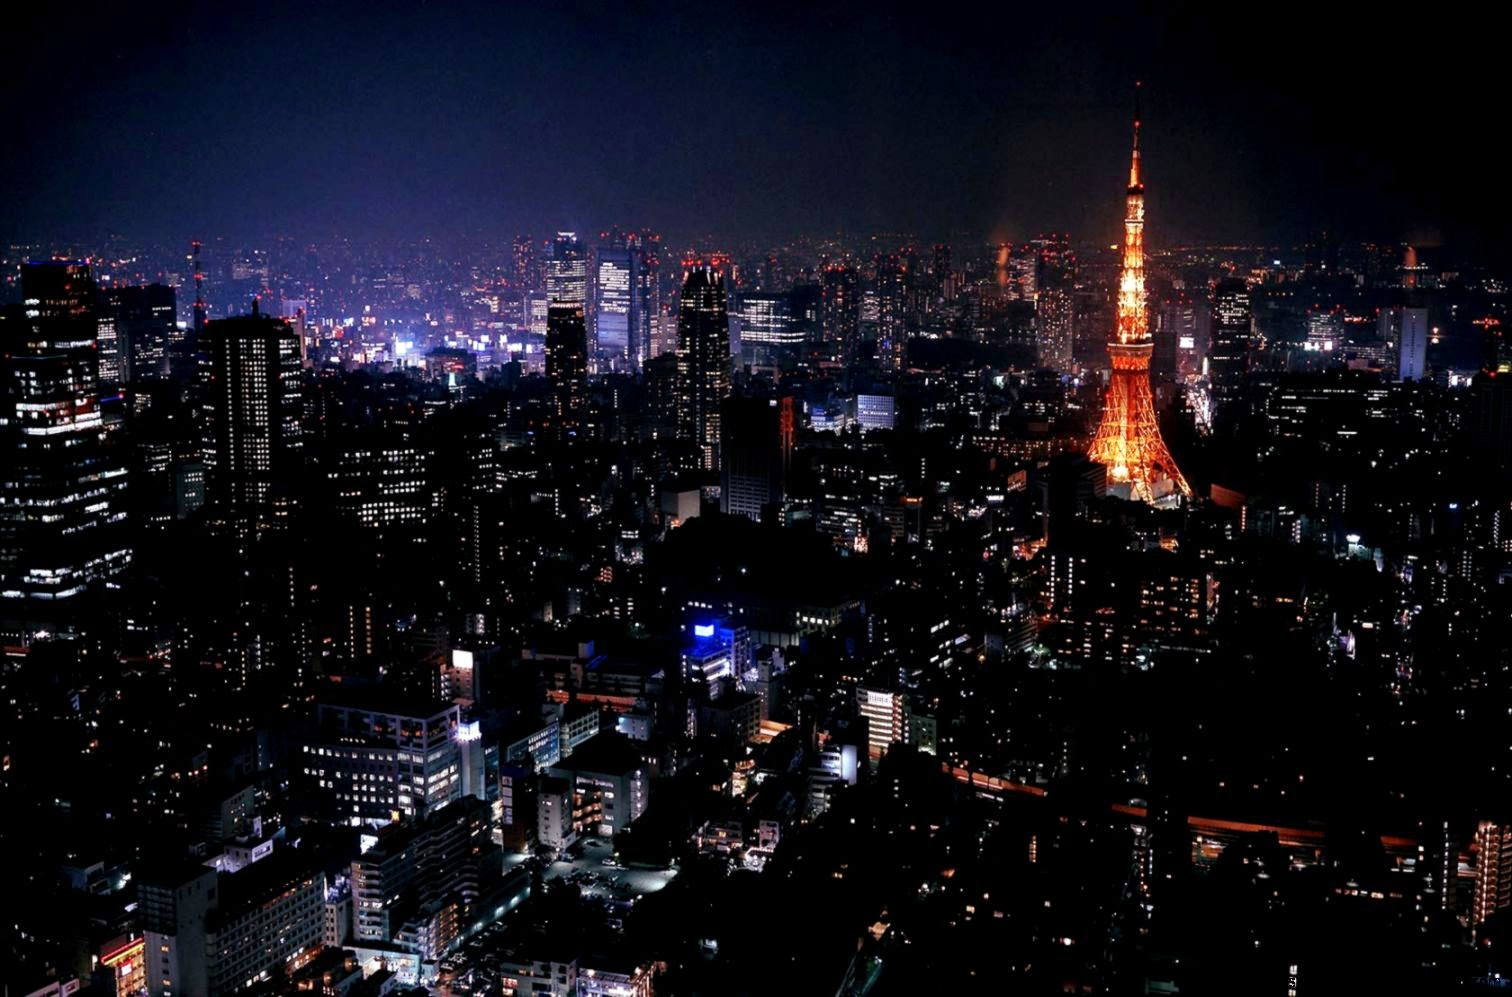 Cityscape Wallpaper Image Picture Best HD Wallpapers 1512x997